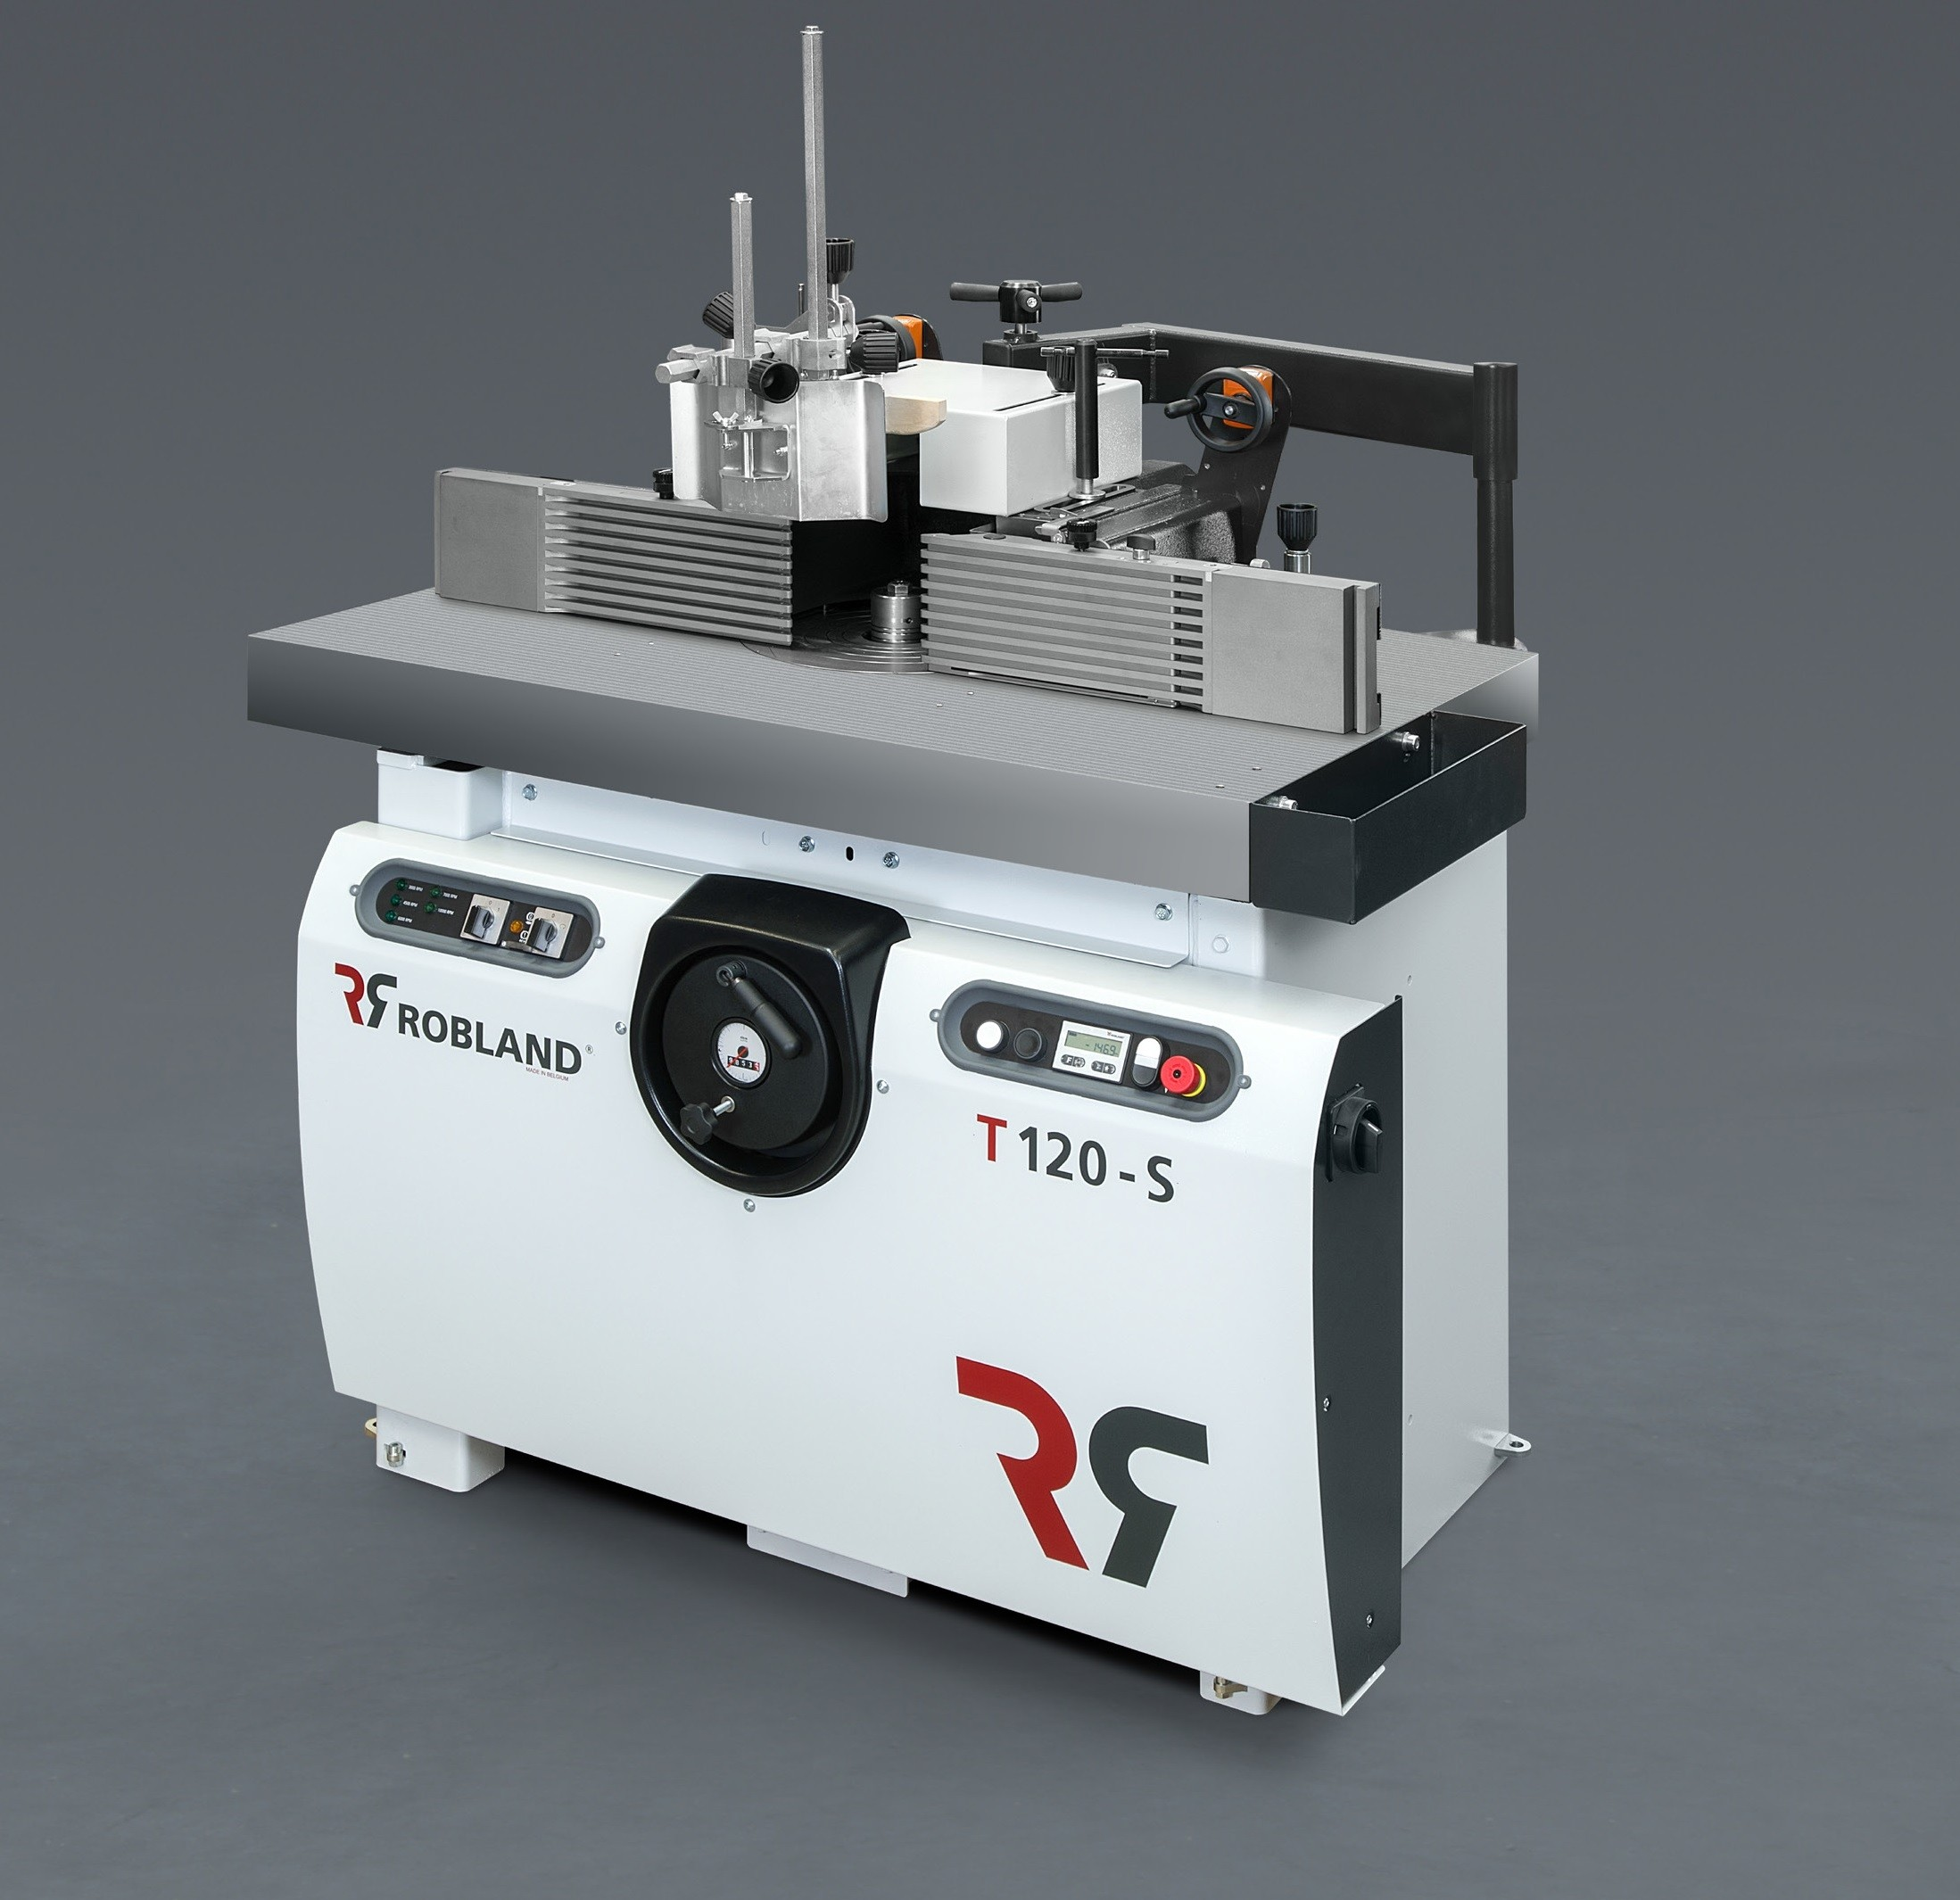 ROBLAND T-120 TS